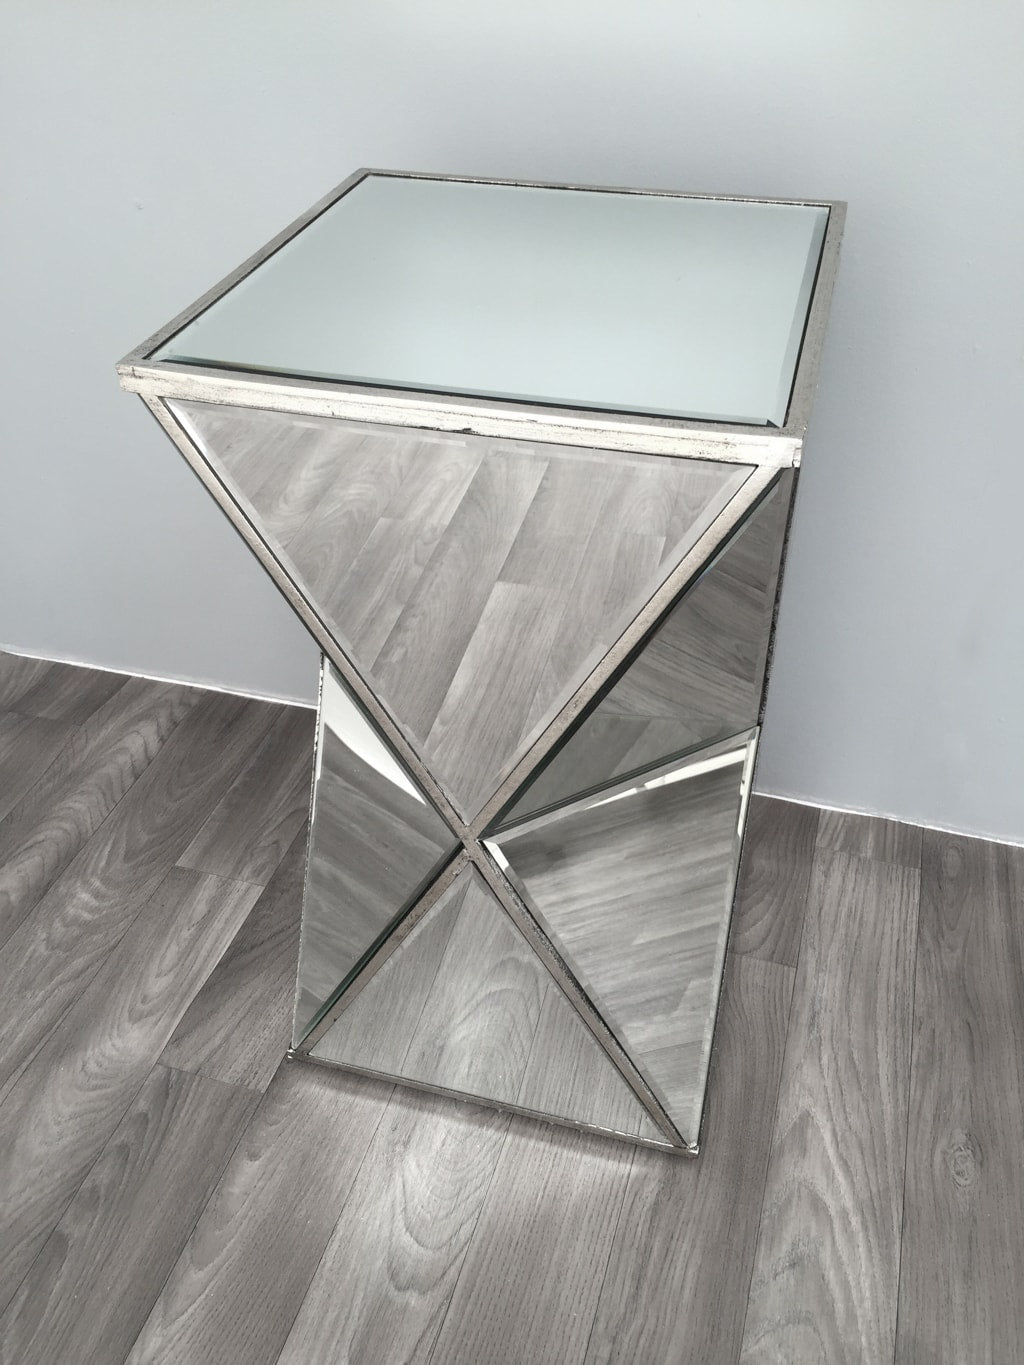 Mirrored Side Table in Hourglass Shape with Triangle Glass panels from Charleston Collection